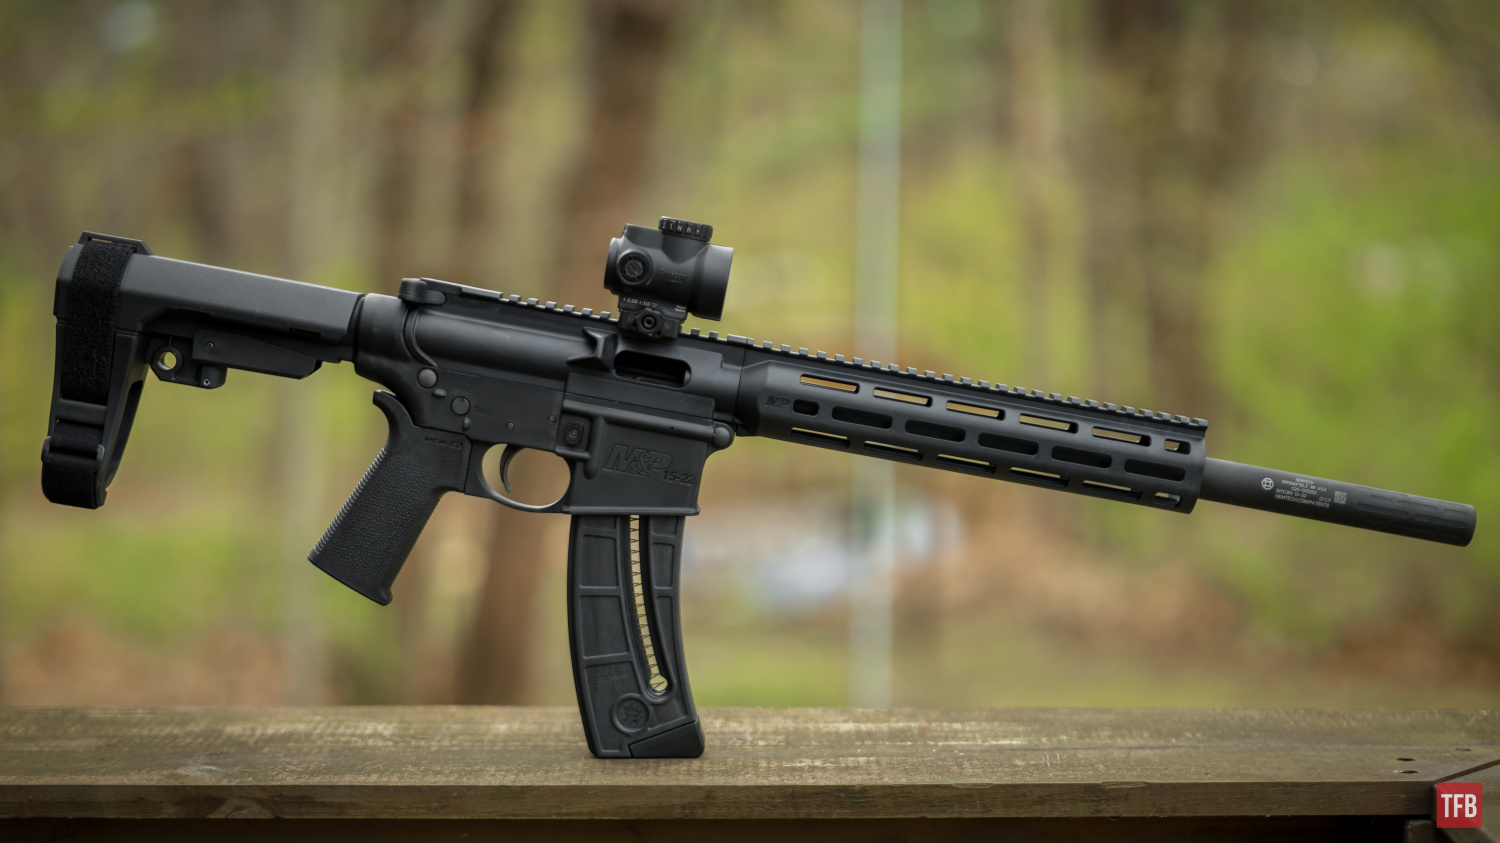 SILENCER SATURDAY #175: Plinking With The Gemtech Integra 15-22